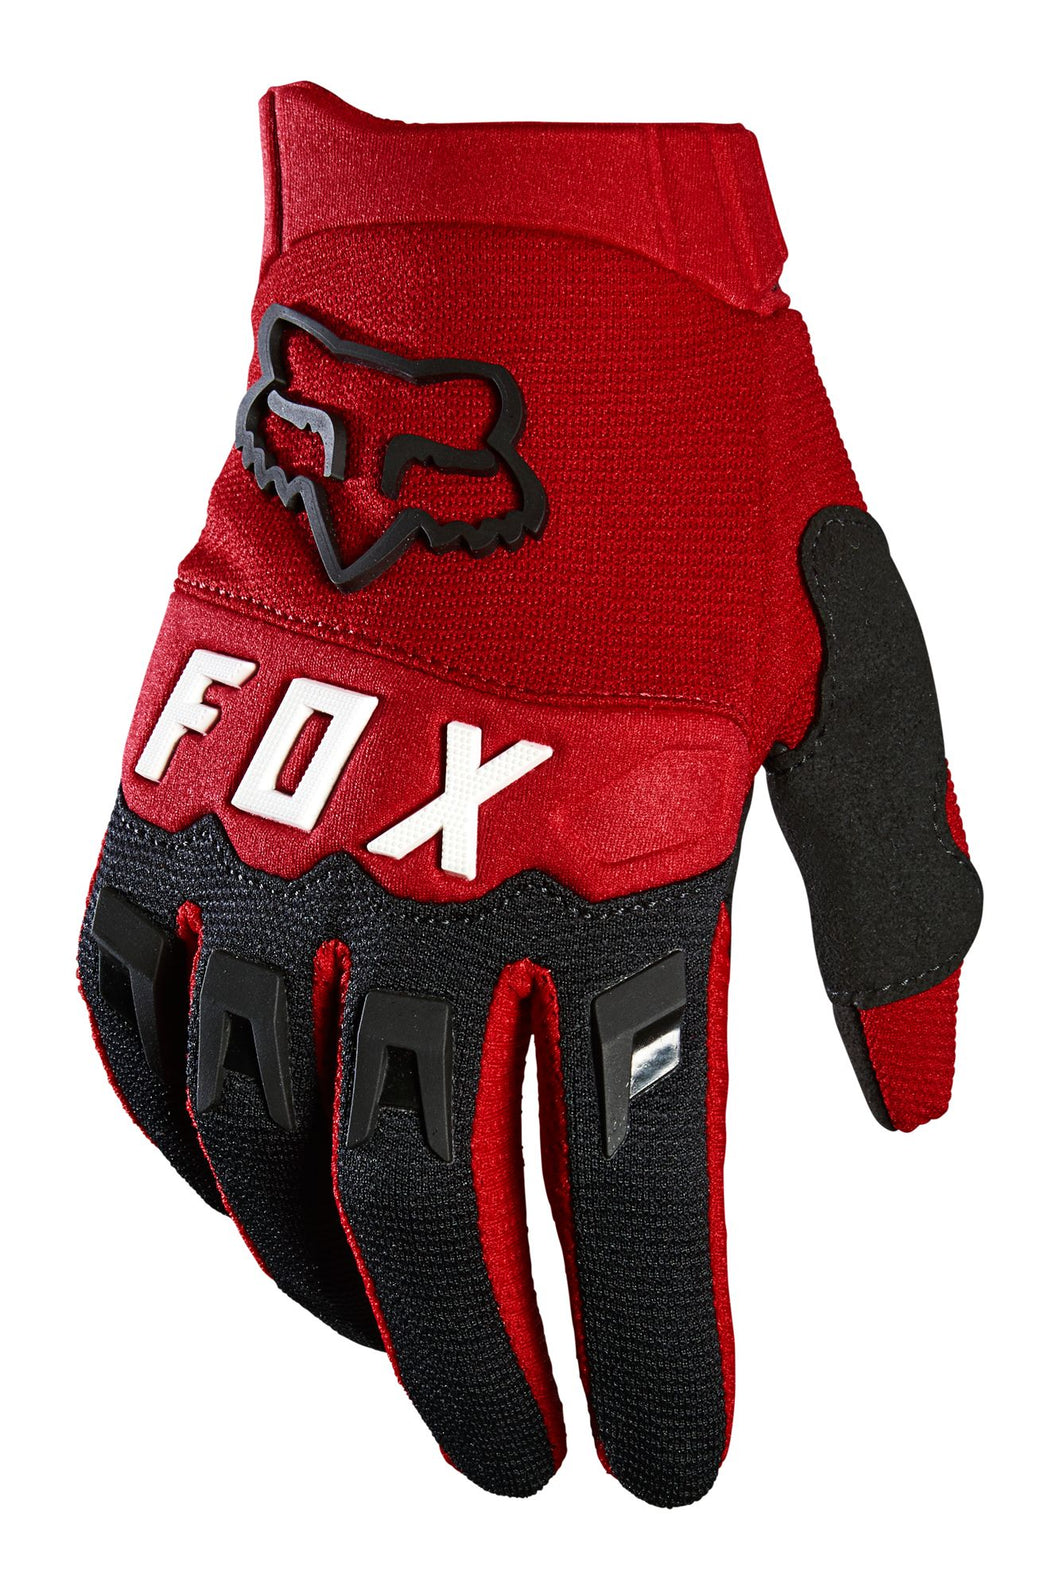 2021 Youth Dirtpaw Glove - Red